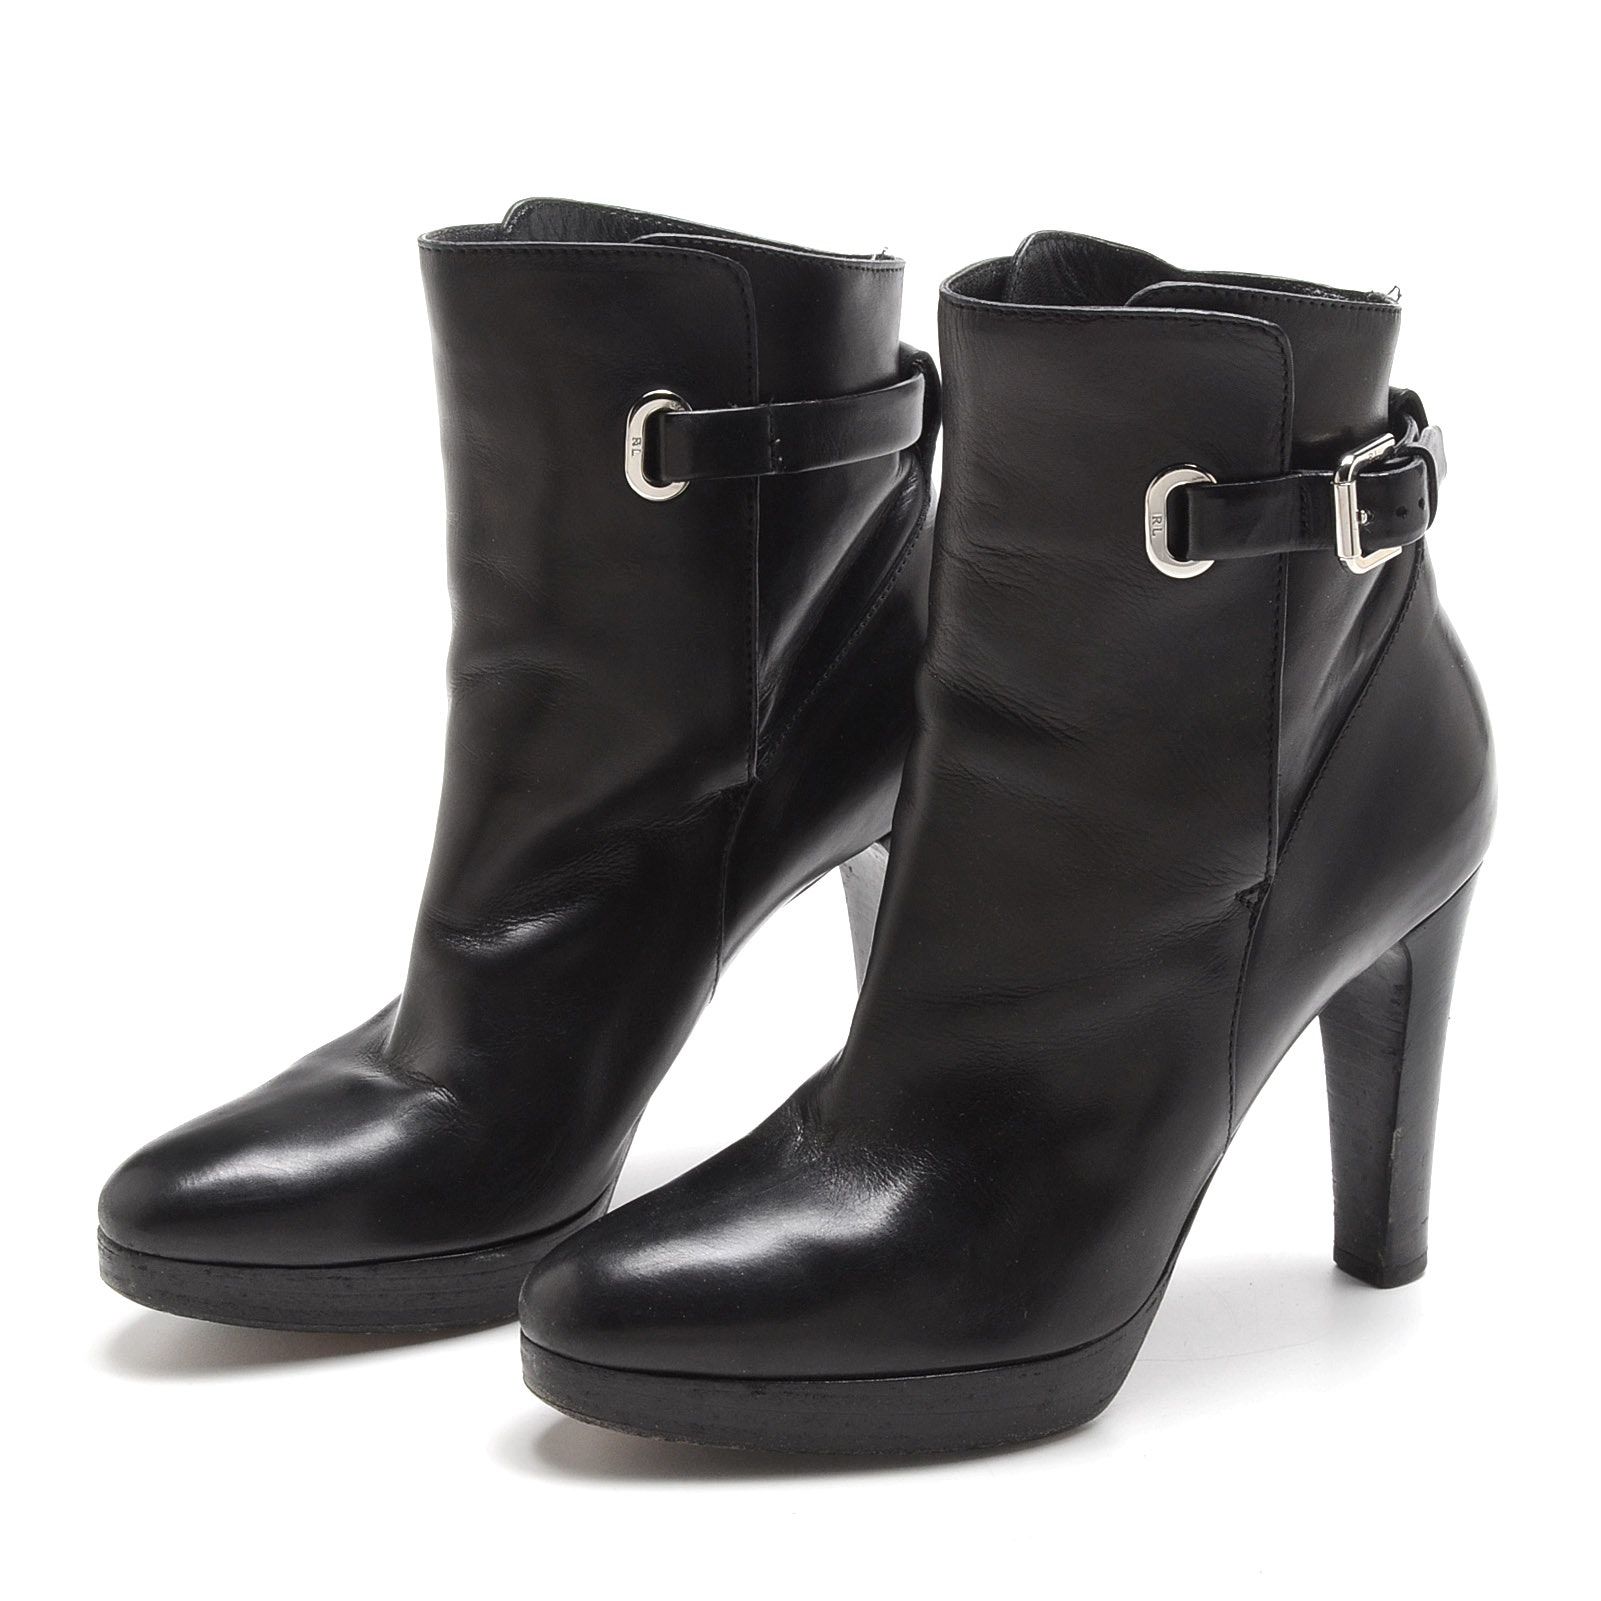 Pair of Ralph Lauren Collection Black Lambskin Leather Platform Booties